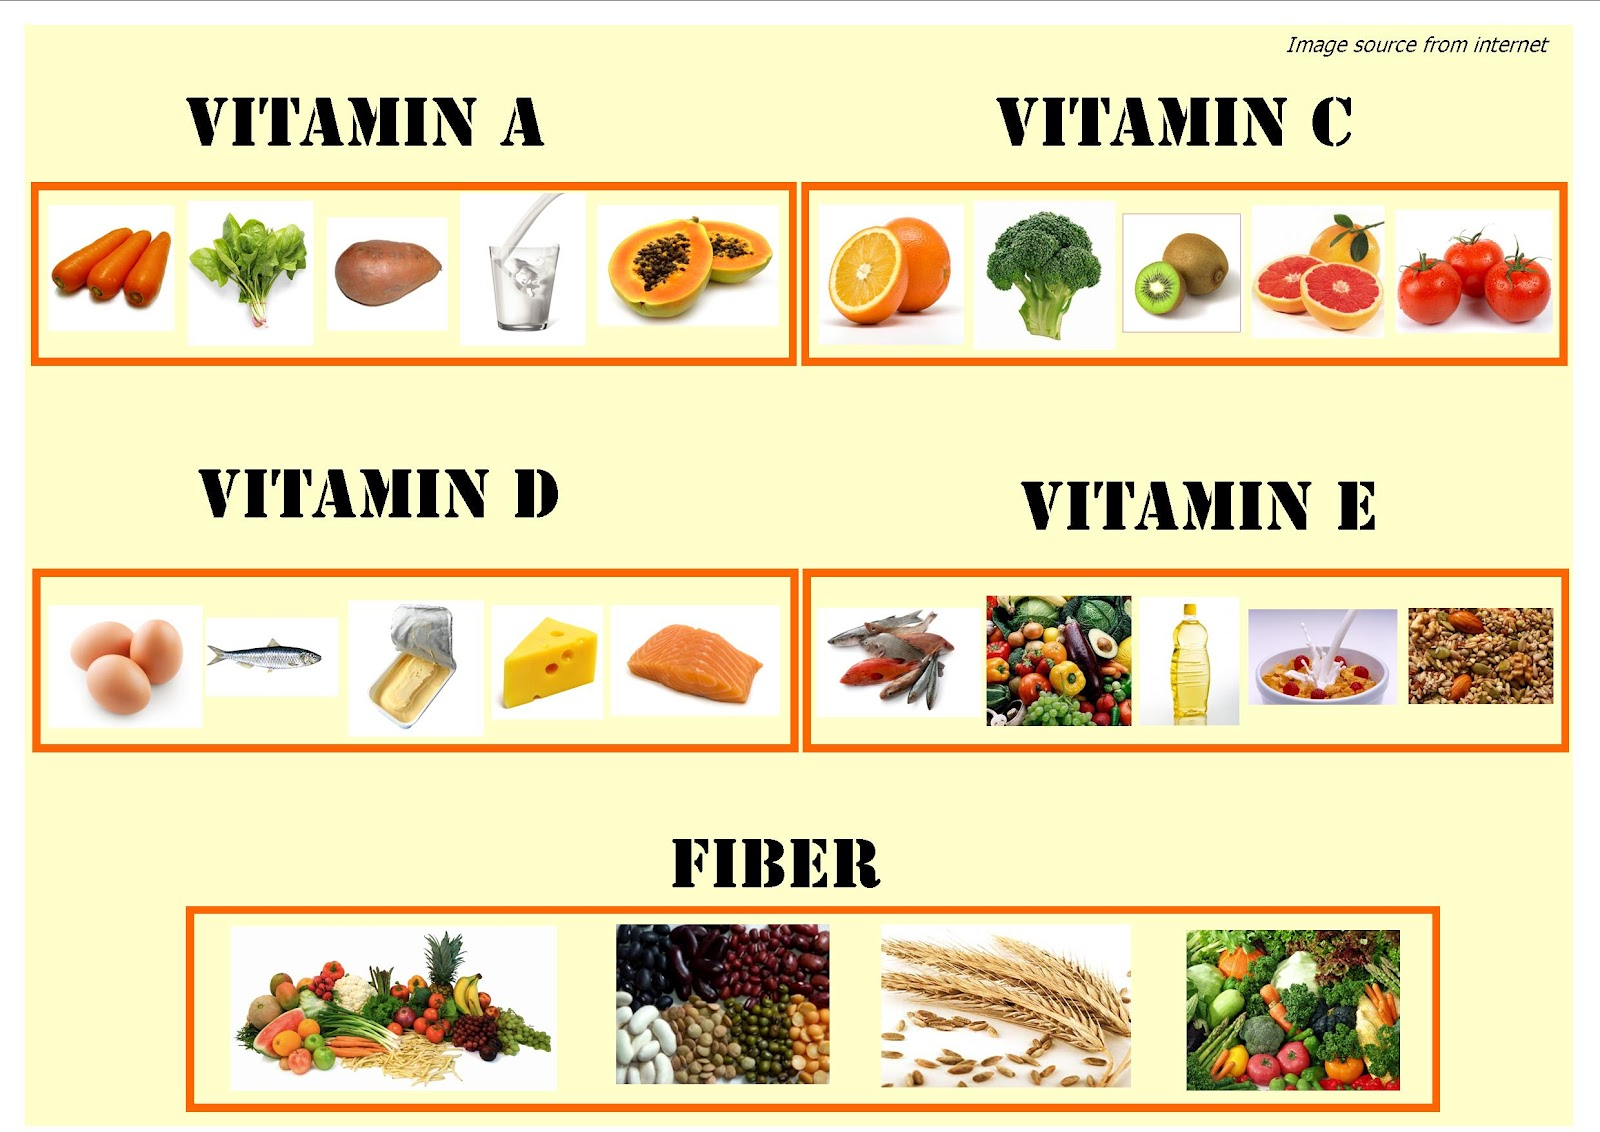 vitamin c content in vegetables Vegetables serve as sources of vitamins and minerals in foods vitamin c is well documented as an antioxidant but can also be lost on processing being a water soluble vitamin the effect of some drying methods on the vitamin c content of green leafy vegetables was investigated standard method of analysis was used for.